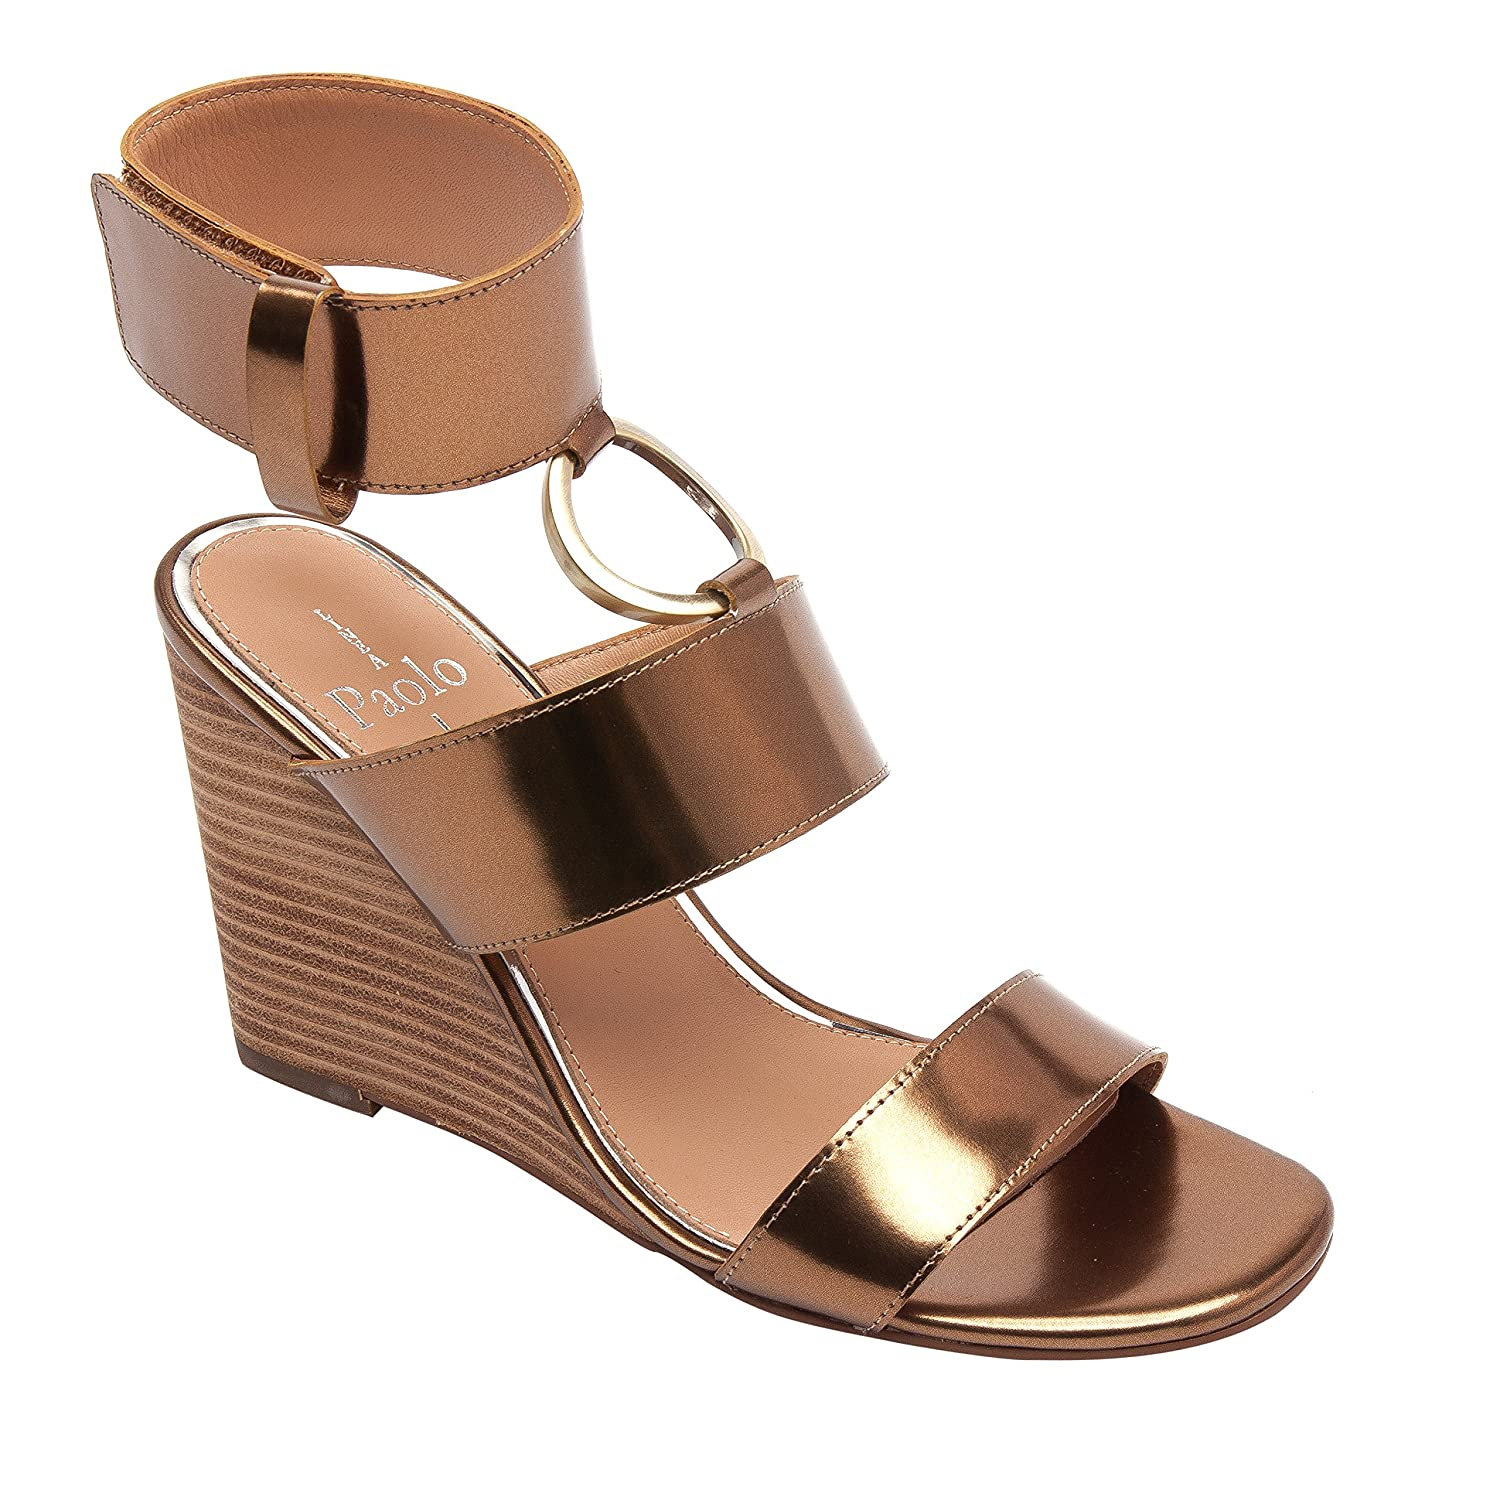 Linea Paolo EVA | Women's Metal Ring Adorned Cuffed Comfortable Wedge Sandal B07957SGZC 9 M US|Bronze Leather